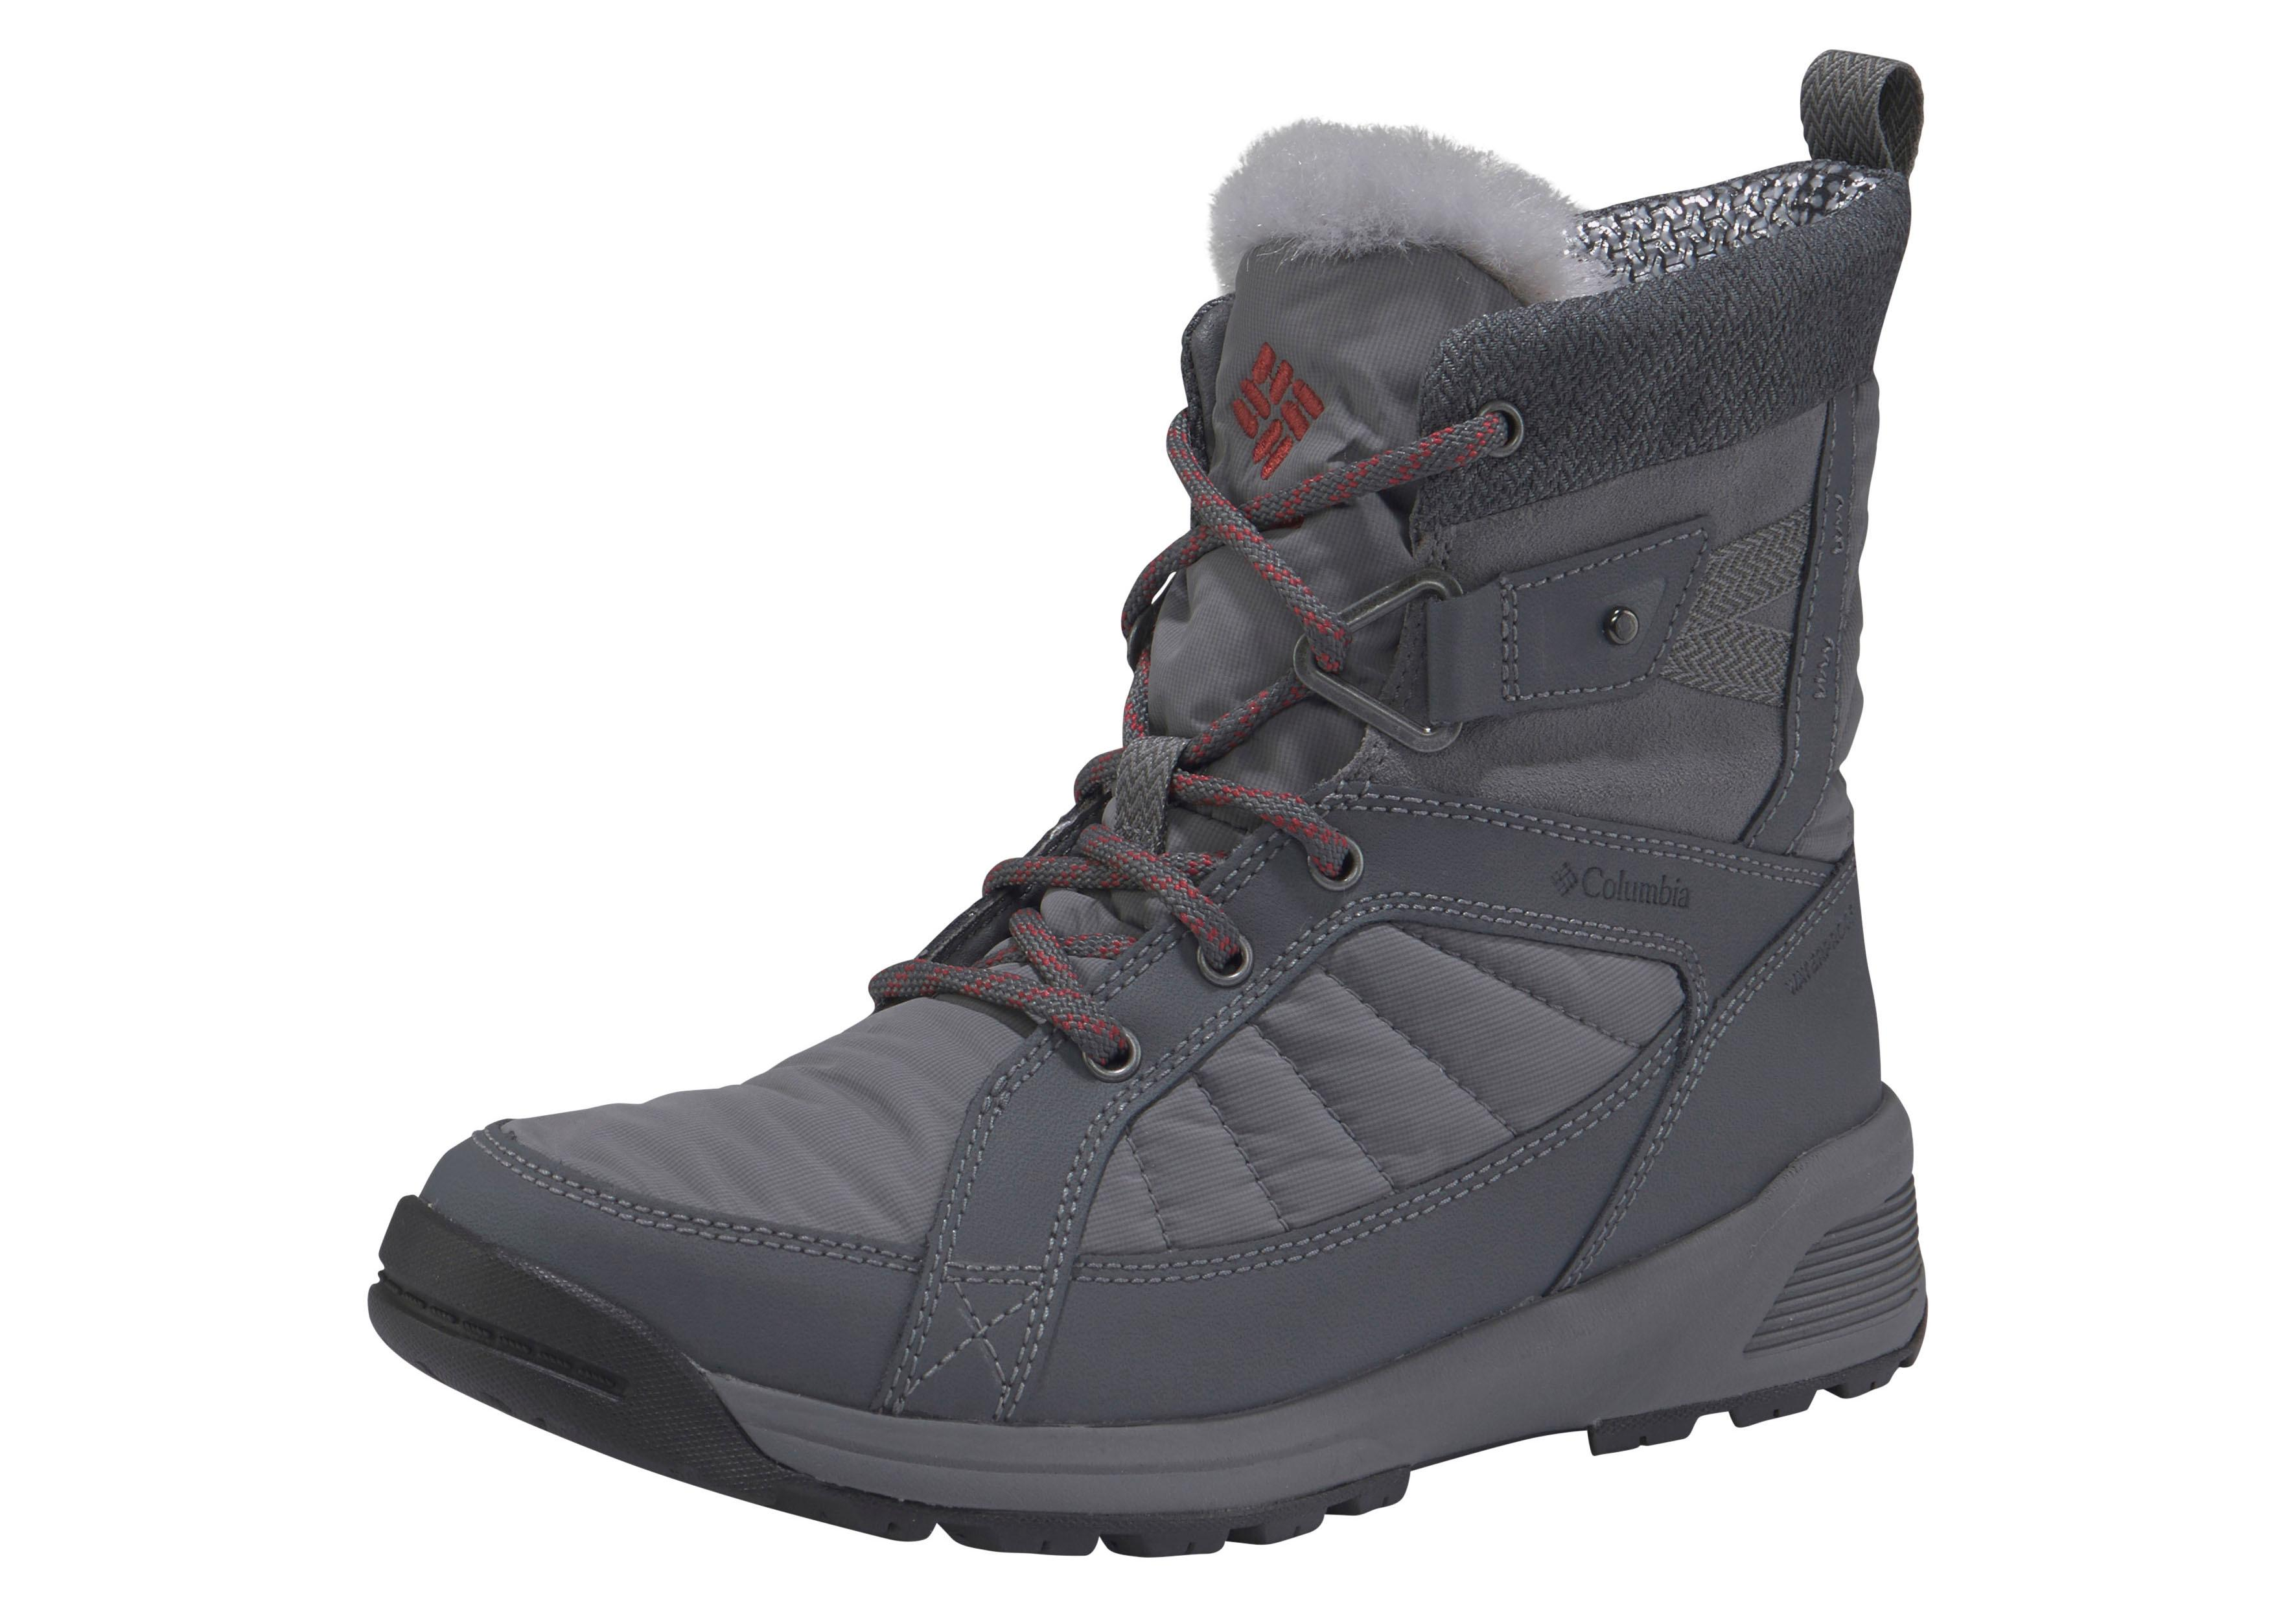 Columbia Outdoorwinterstiefel MEADOWS? SHORTY OMNI-HEAT? 3D | Schuhe > Outdoorschuhe > Outdoorwinterstiefel | Grau | Columbia